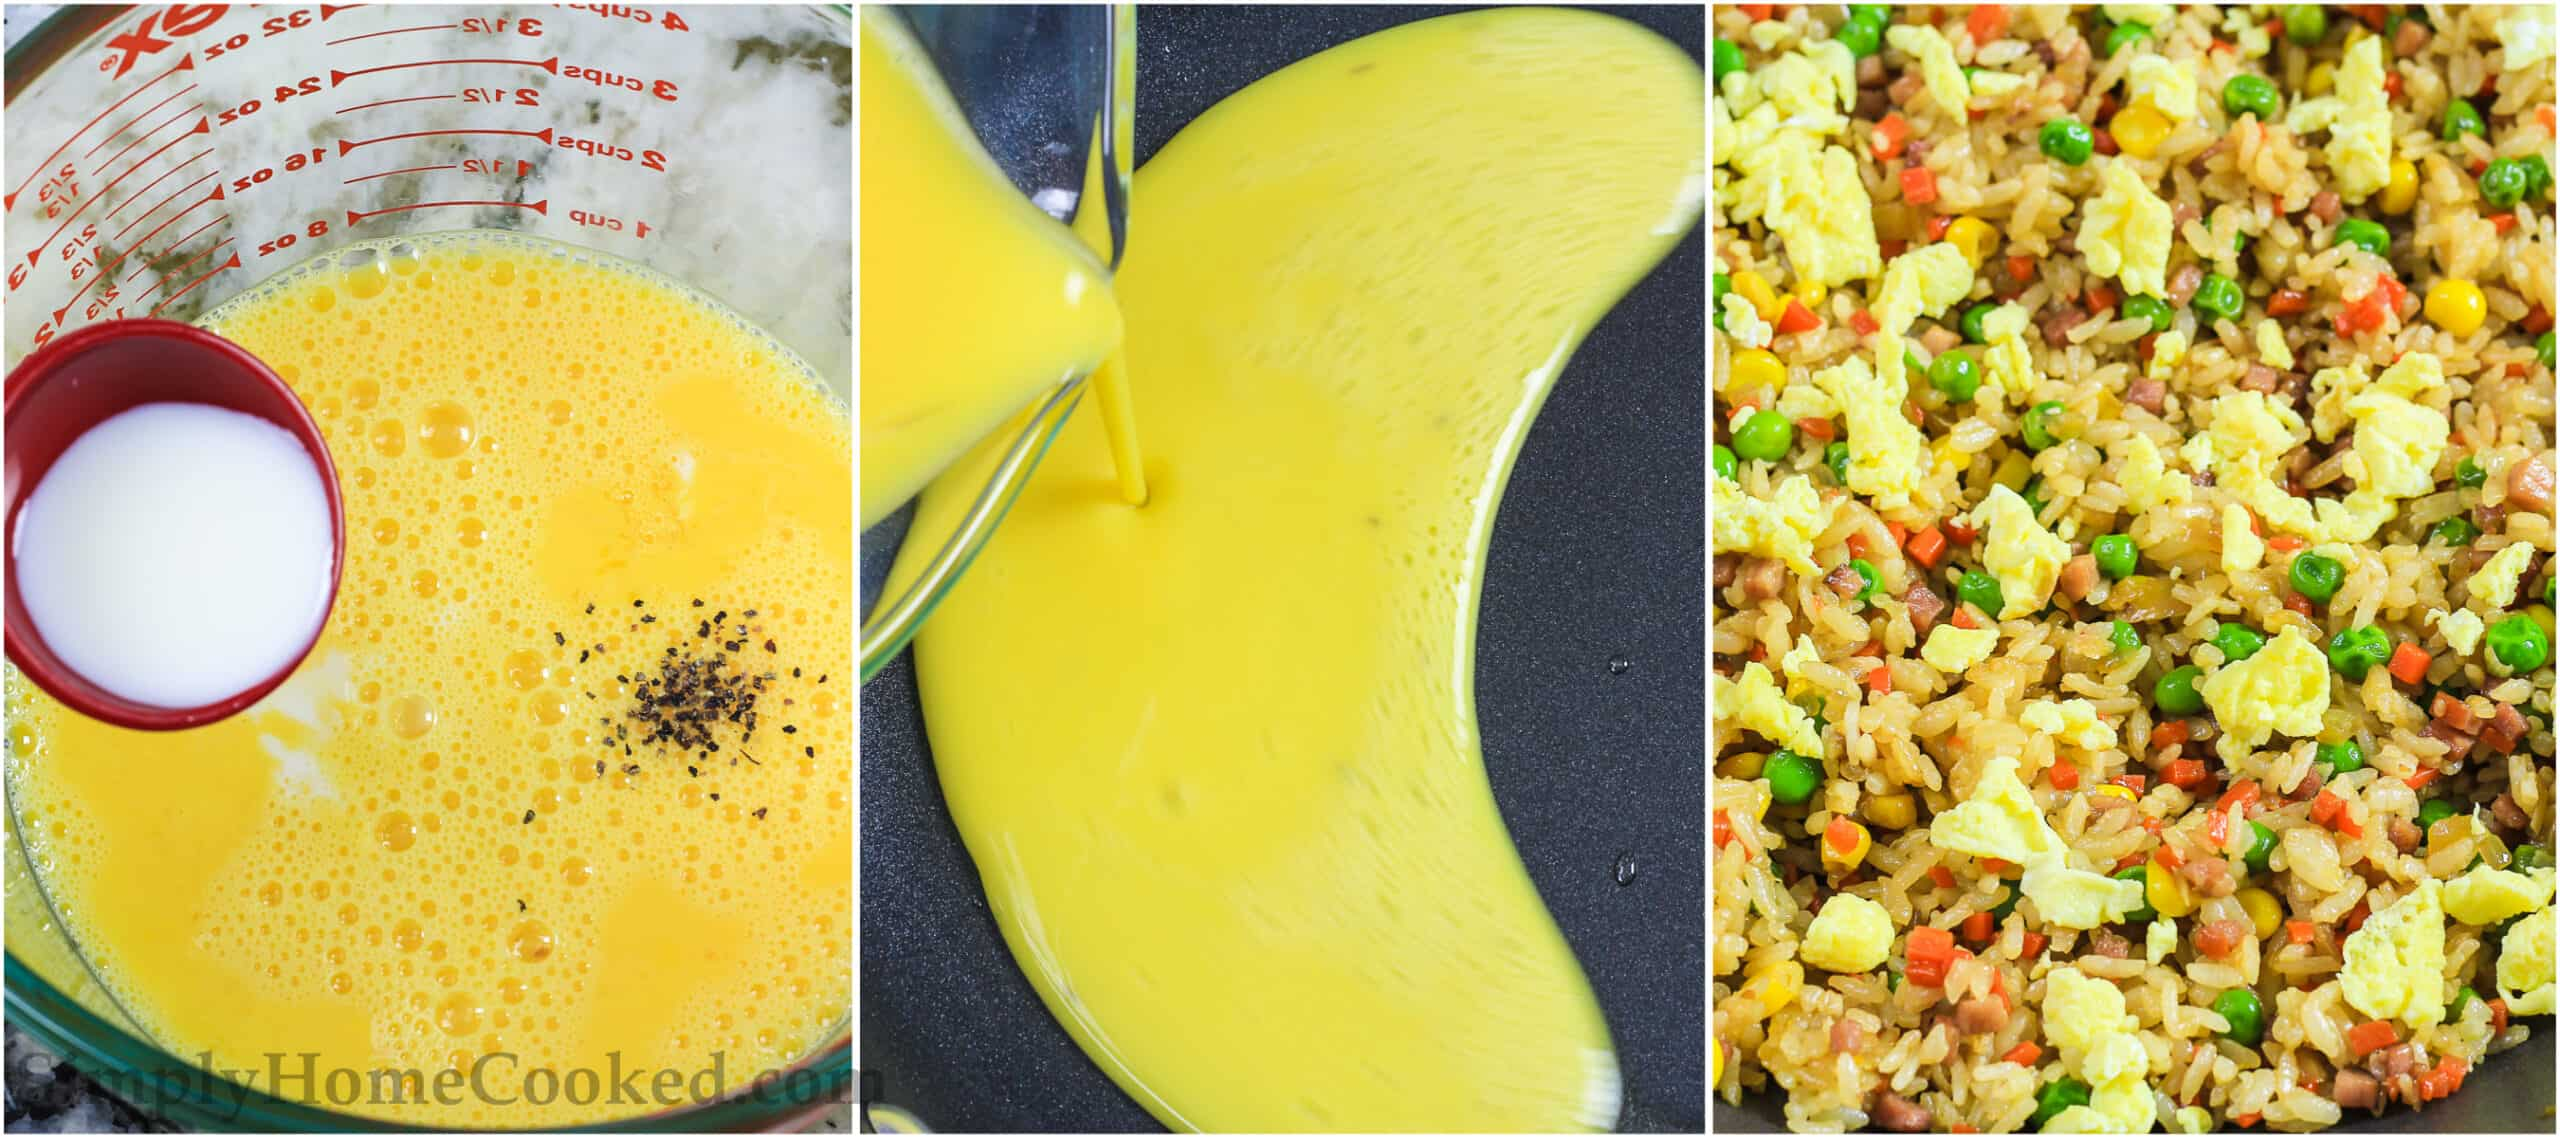 A three image collage on how to make pork fried rice with fried egg on top